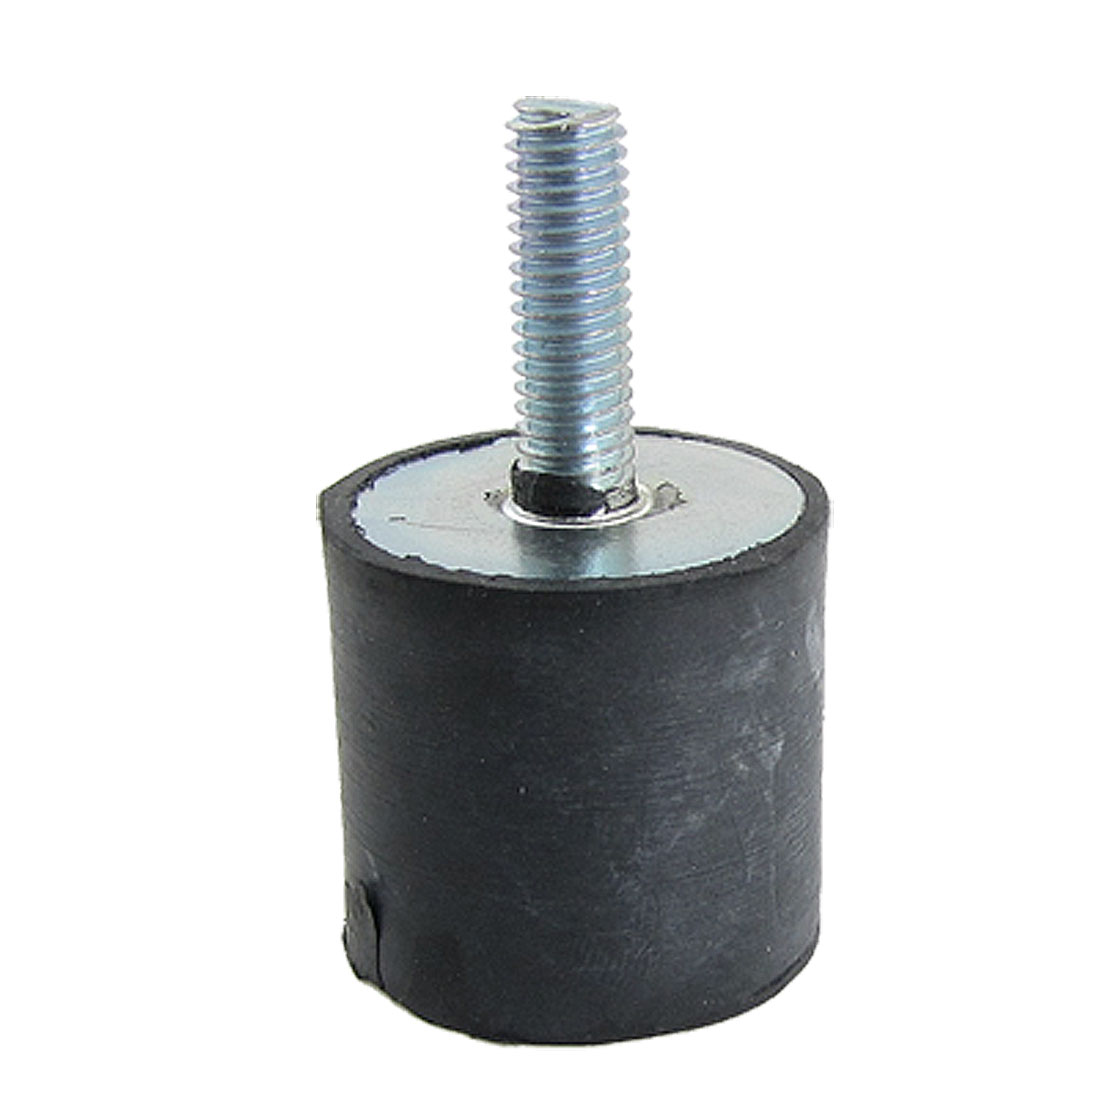 6 x 12mm Male Thread Rubber Vibration Isolator Mount